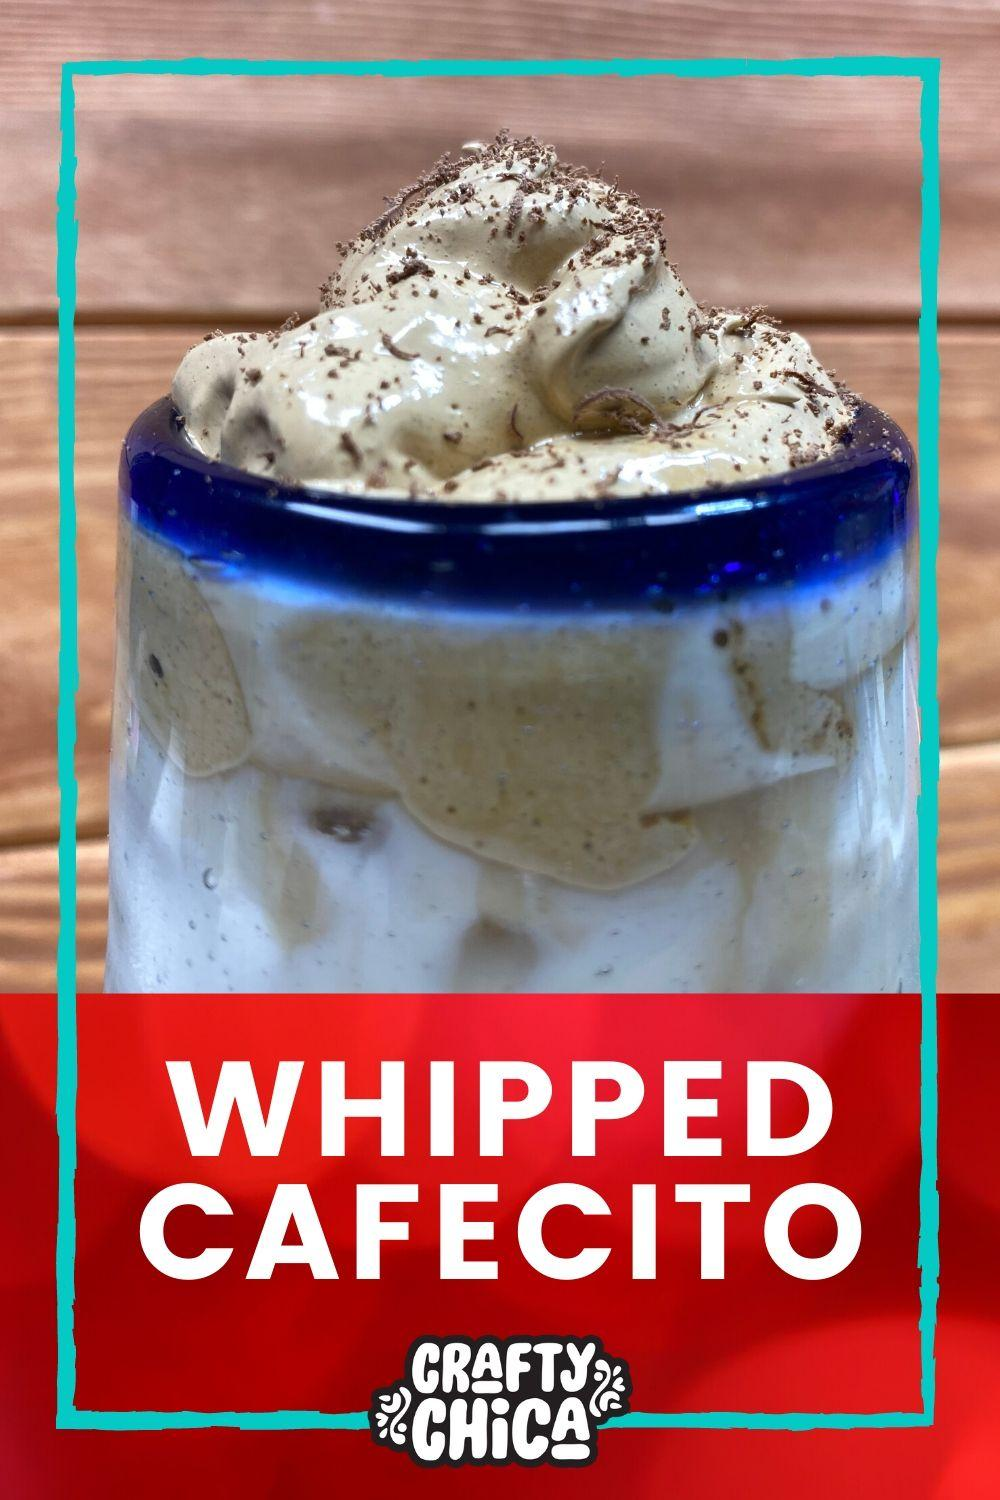 Whipped Coffee Latin Style #craftychica #dalgonacoffee #whippedcoffee